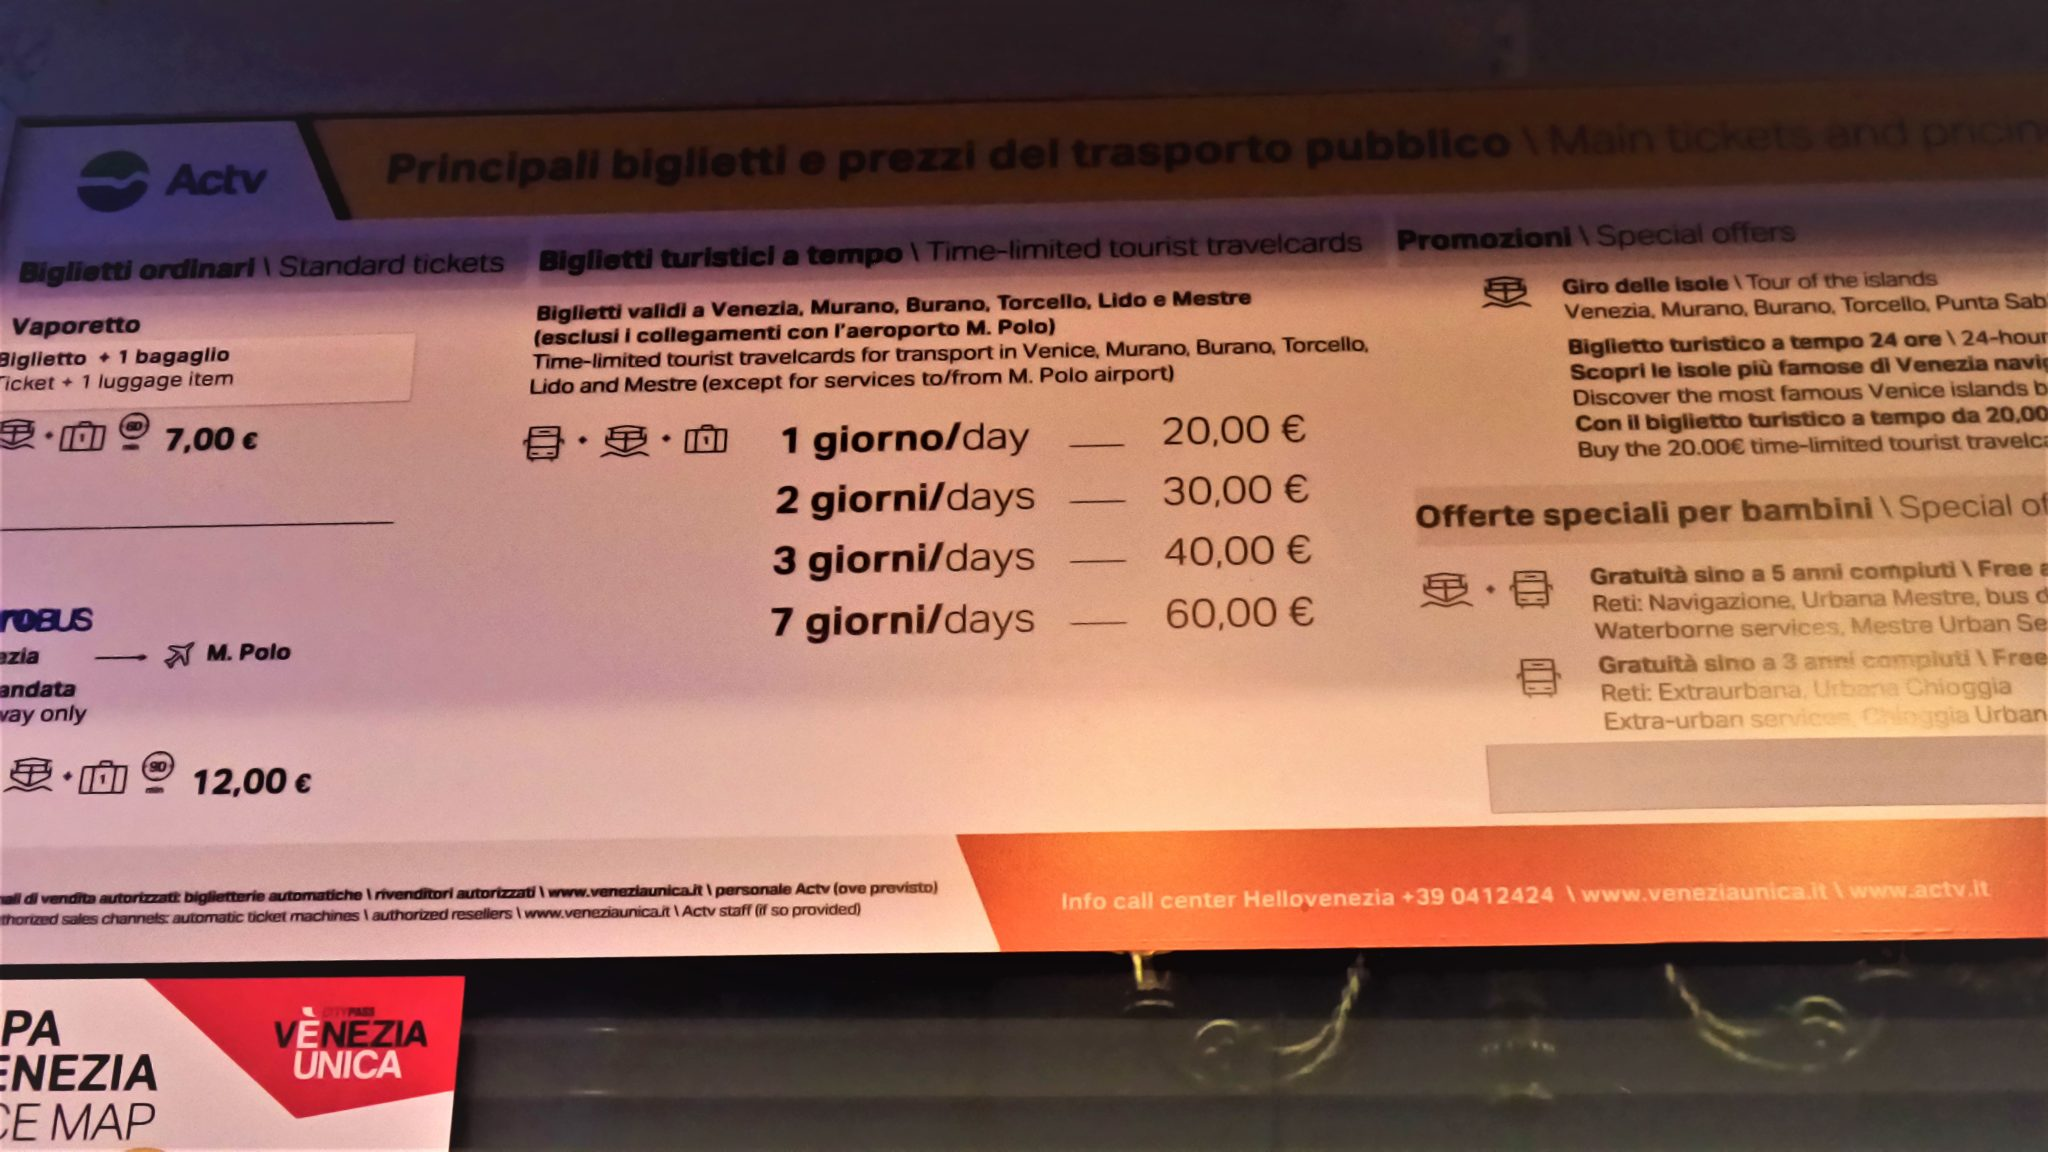 Vaporetto pass prices, Venice, Italy